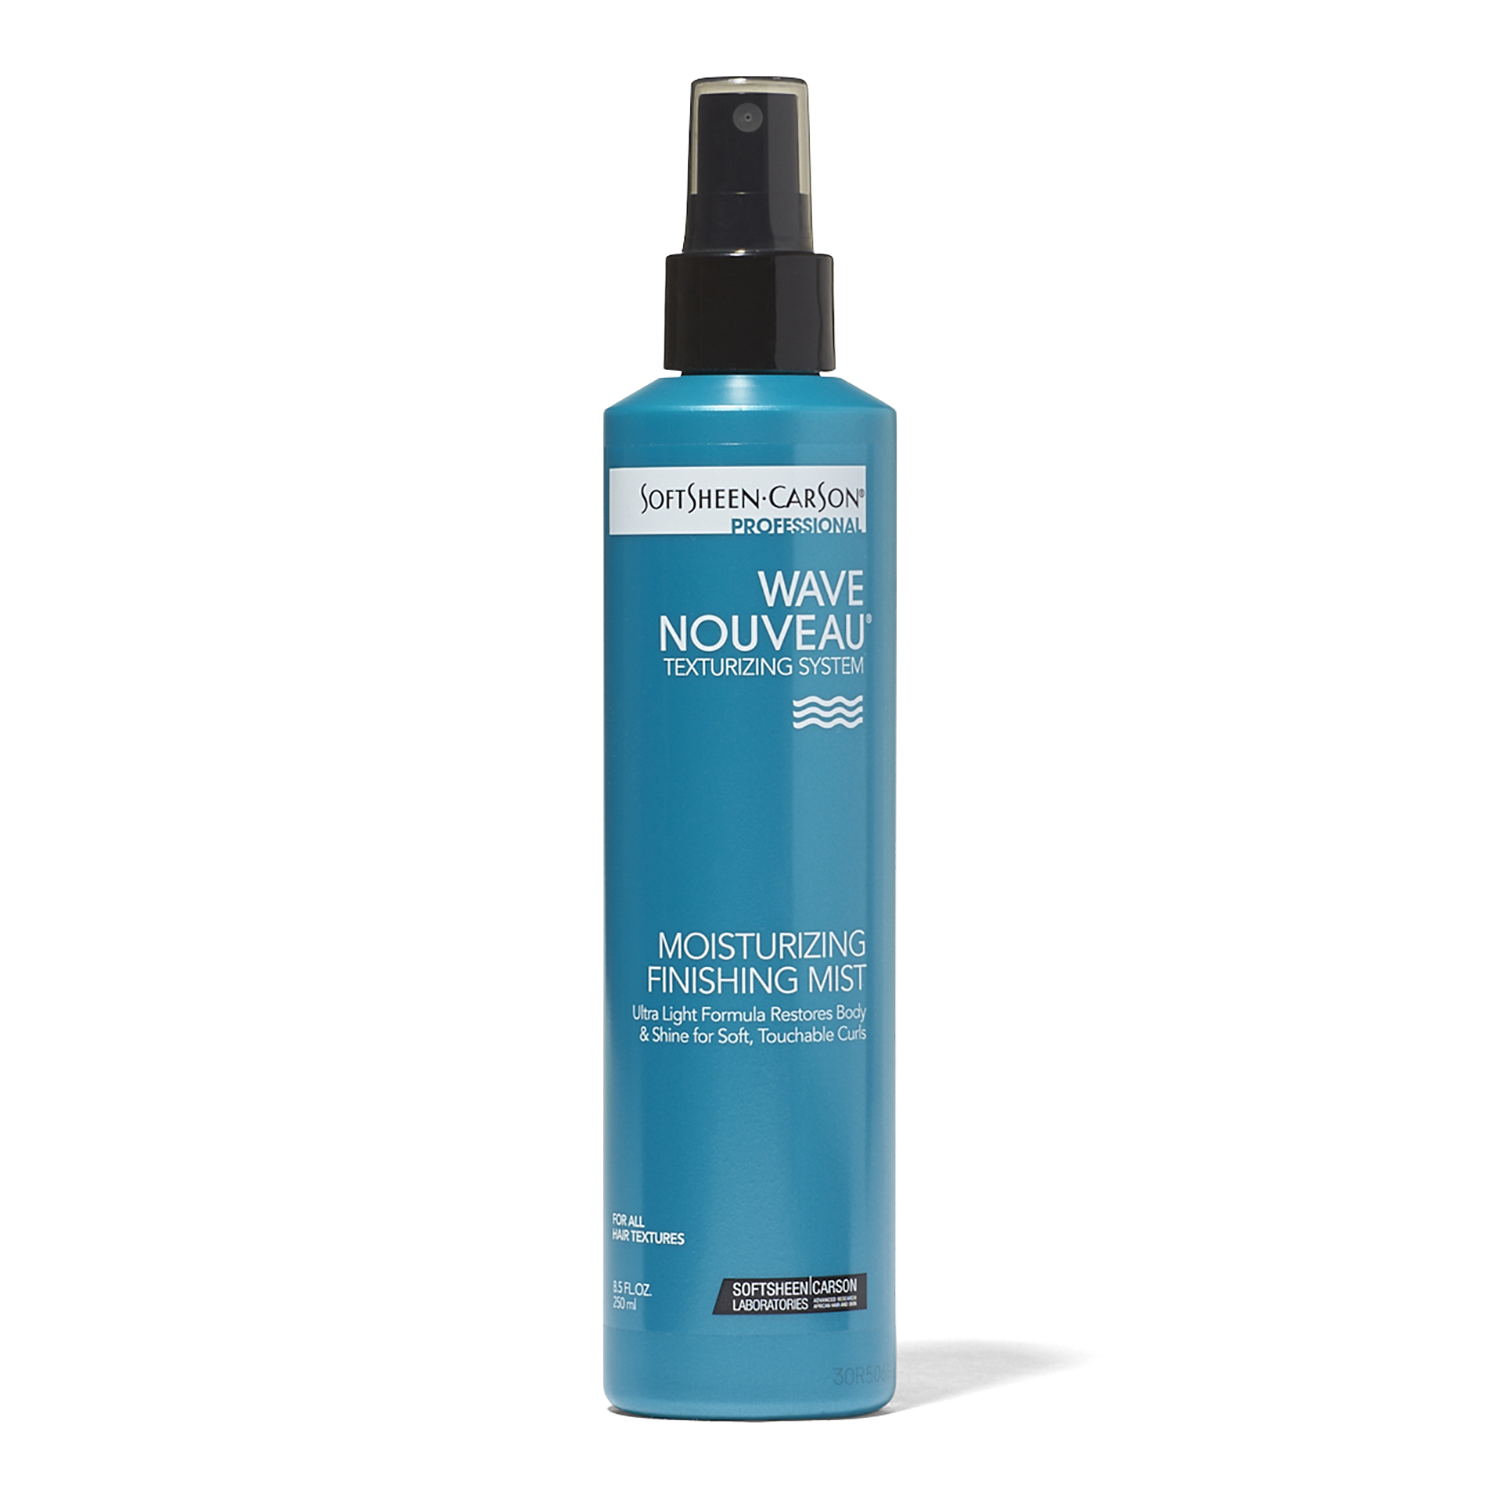 Wave Nouveau Coiffure Moisturizing Finishing Mist